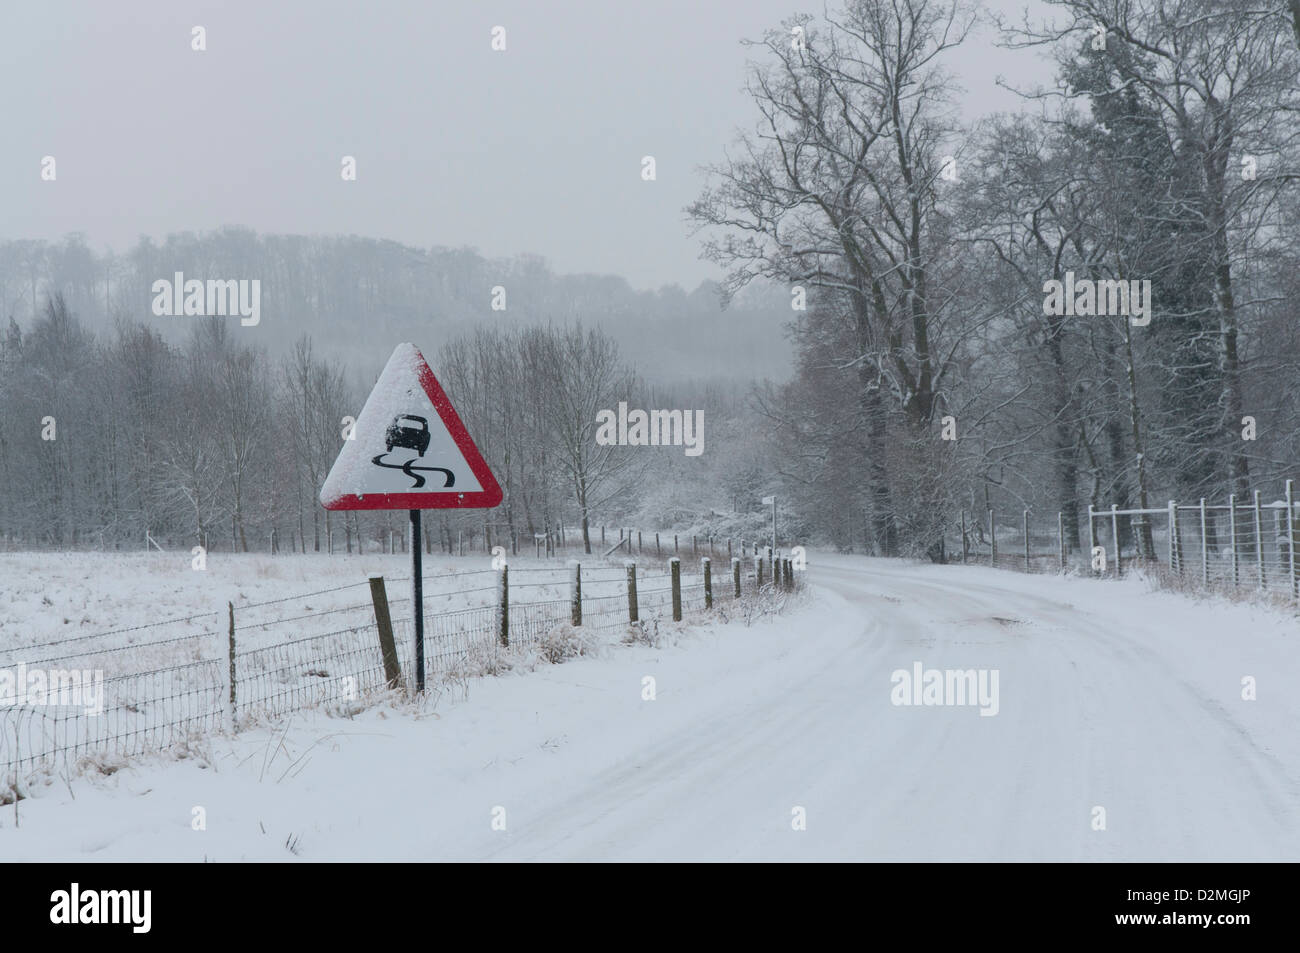 Snow covered winding country road with slippery road warning sign - Stock Image